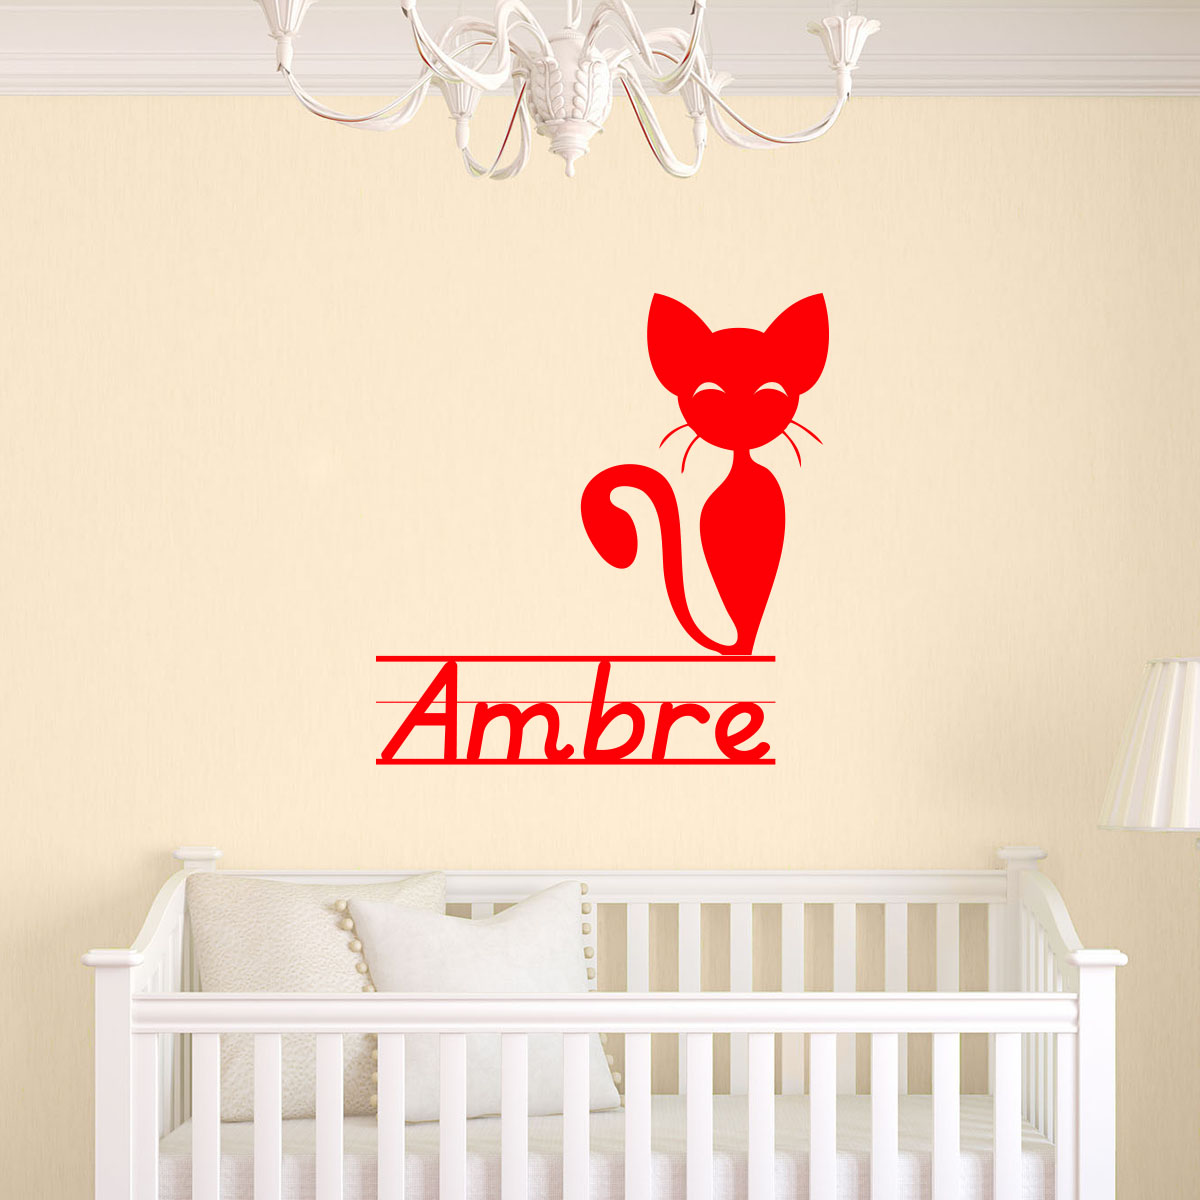 sticker pr nom personnalis mignon petit chat mini stickers pr nom perso ambiance sticker. Black Bedroom Furniture Sets. Home Design Ideas